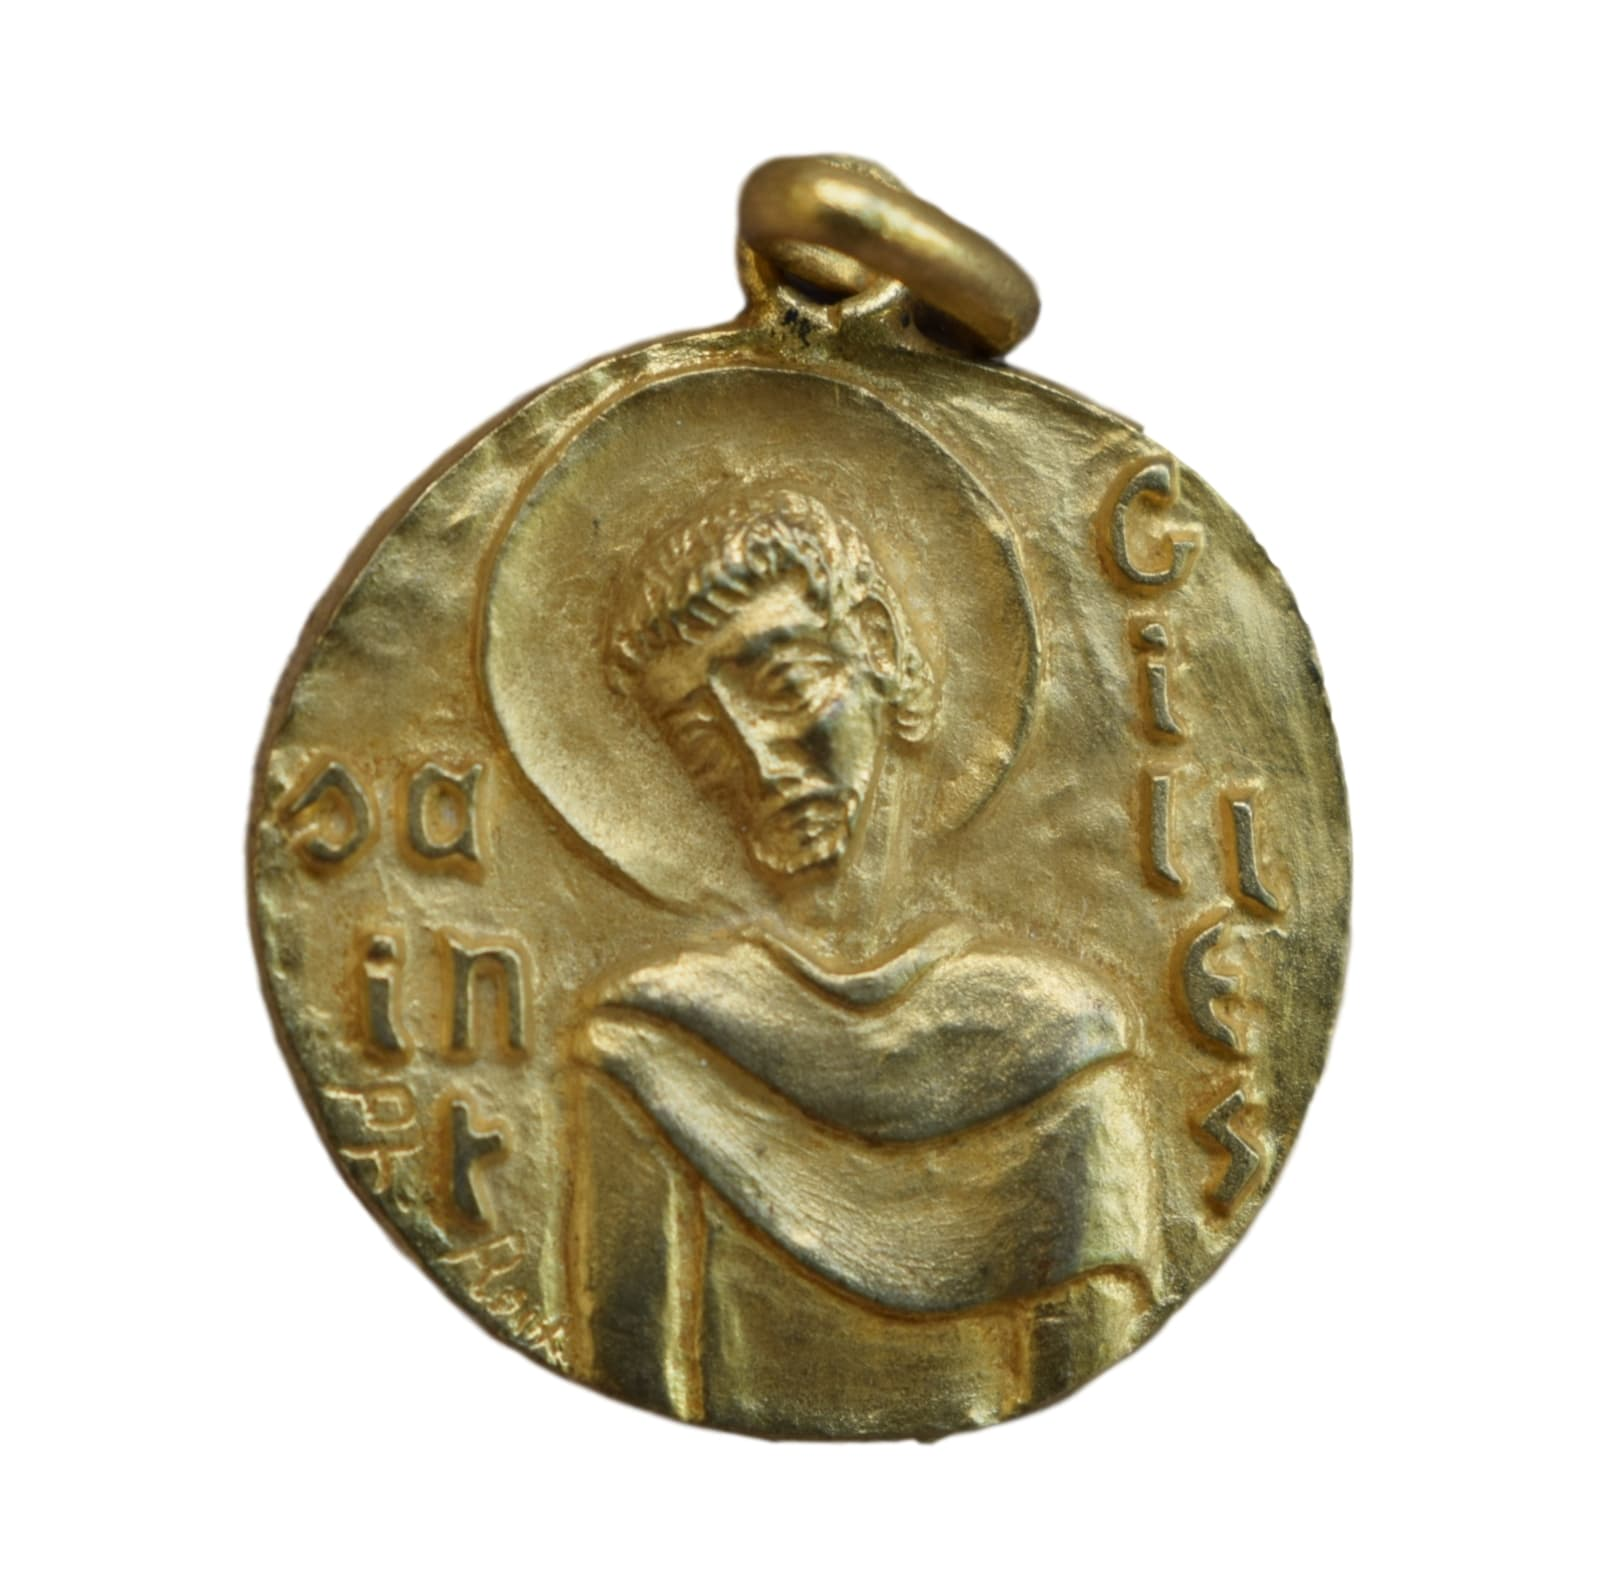 Saint Gilles Giles Hermit Medal - French Religious Vintage Gold Medal Pendant Charm by Philippe Roch - Modernist Design - St Patron